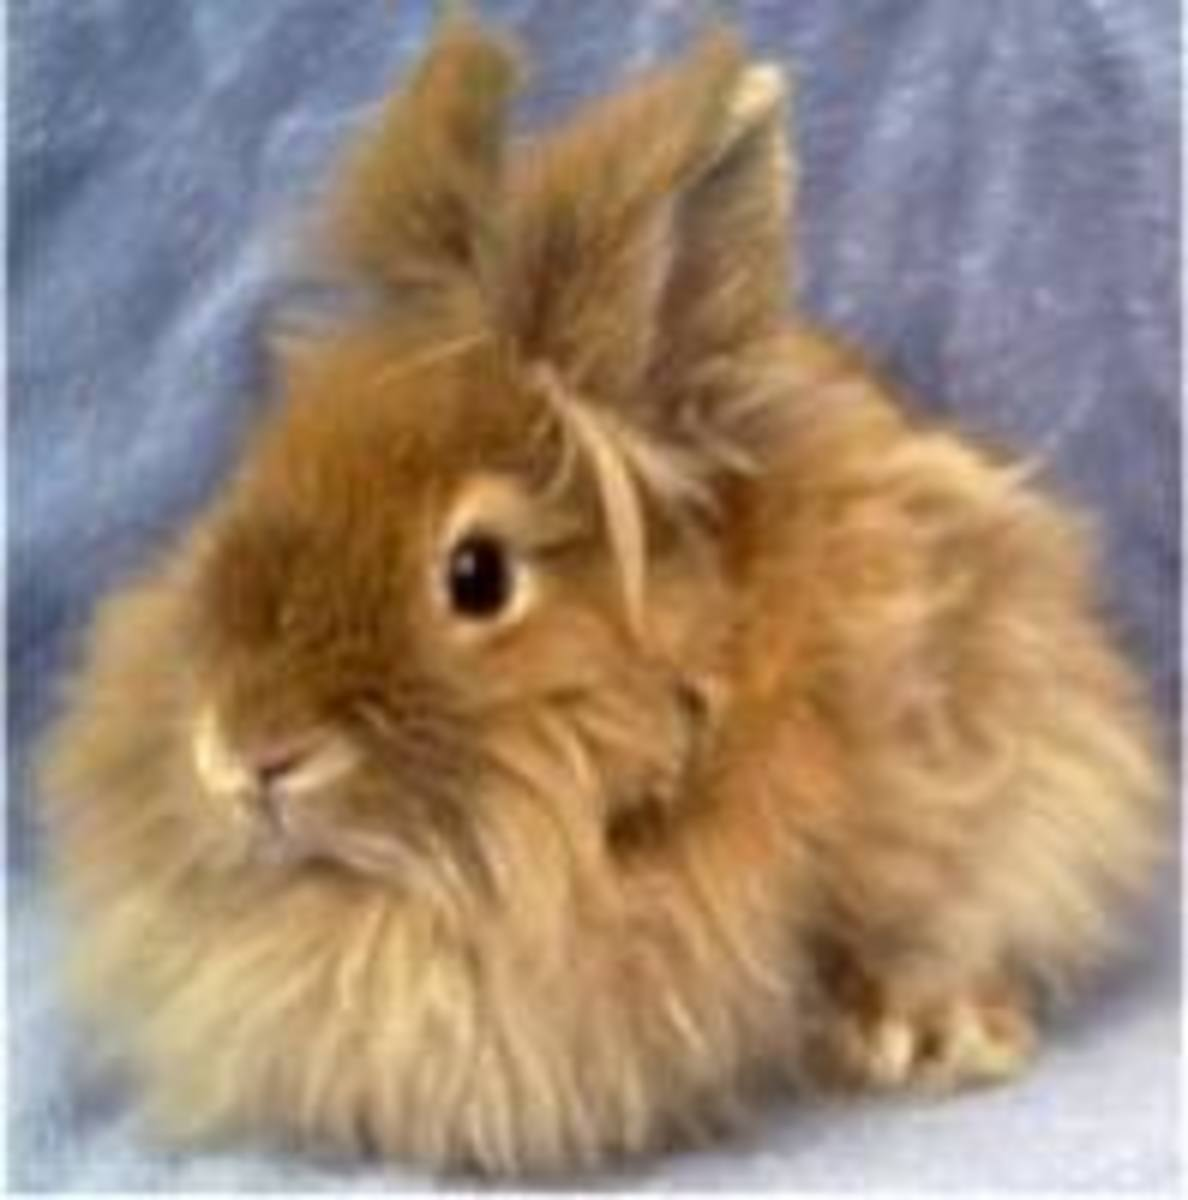 Lionhead Bunny Rabbits - All About these Cute and Unusual Bunnies